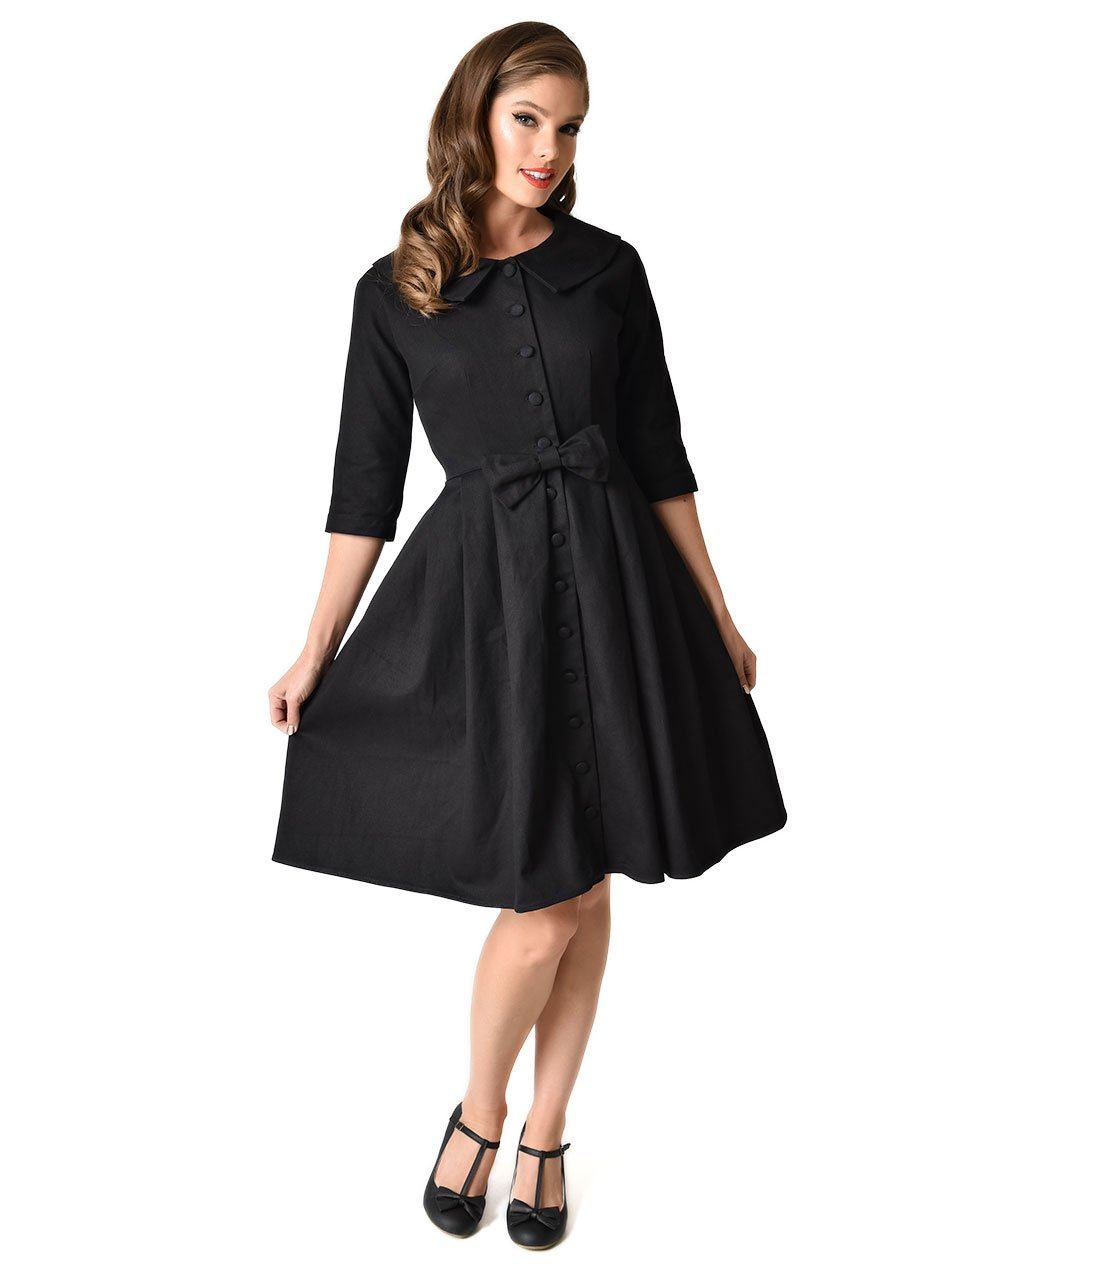 Unique Vintage 1950s Style Black Button Up Sleeved Hedren Coatdress